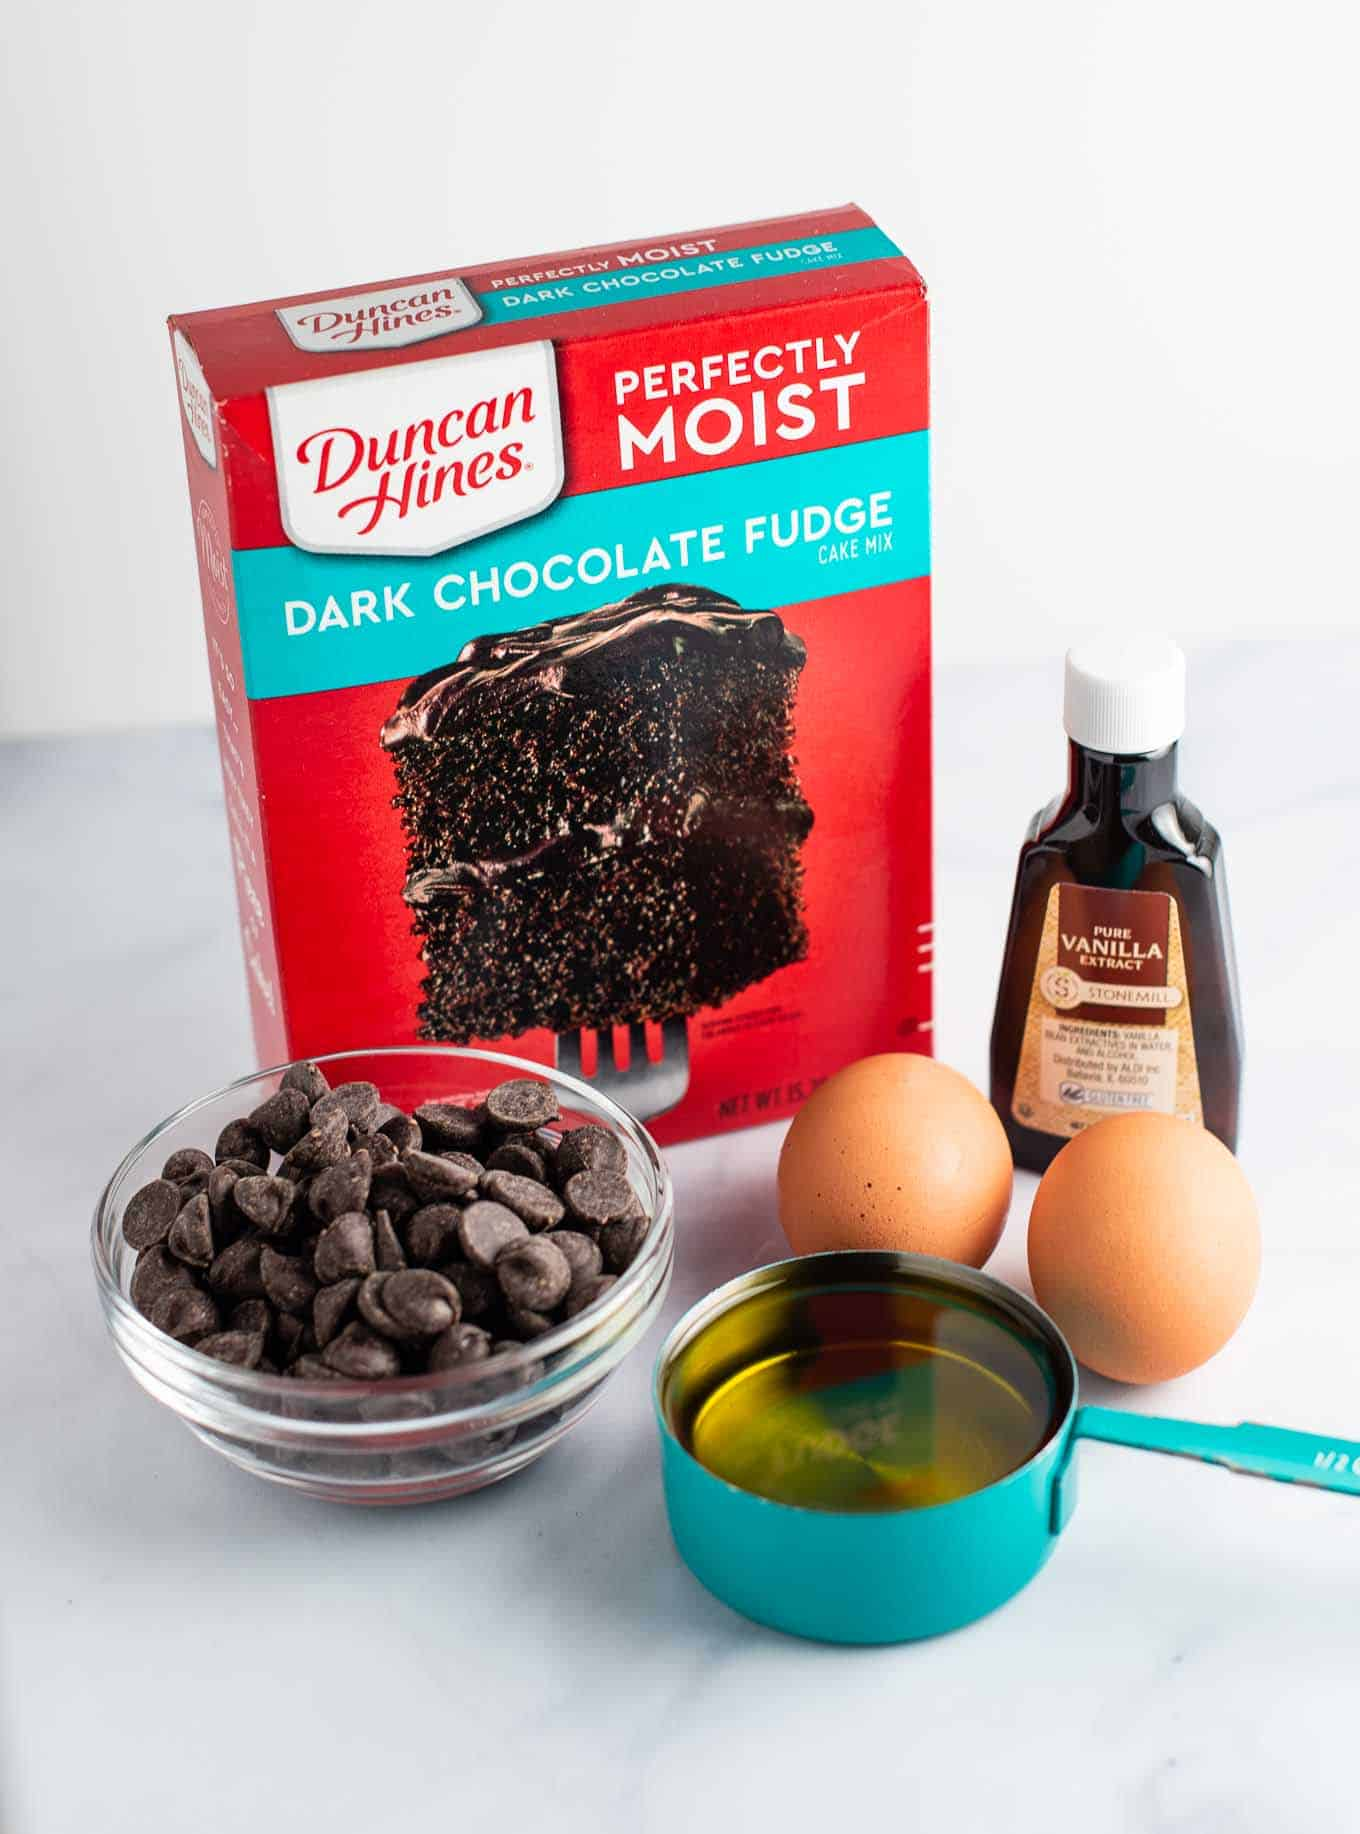 cake mix, chocolate chips, oil, eggs, vanilla extract